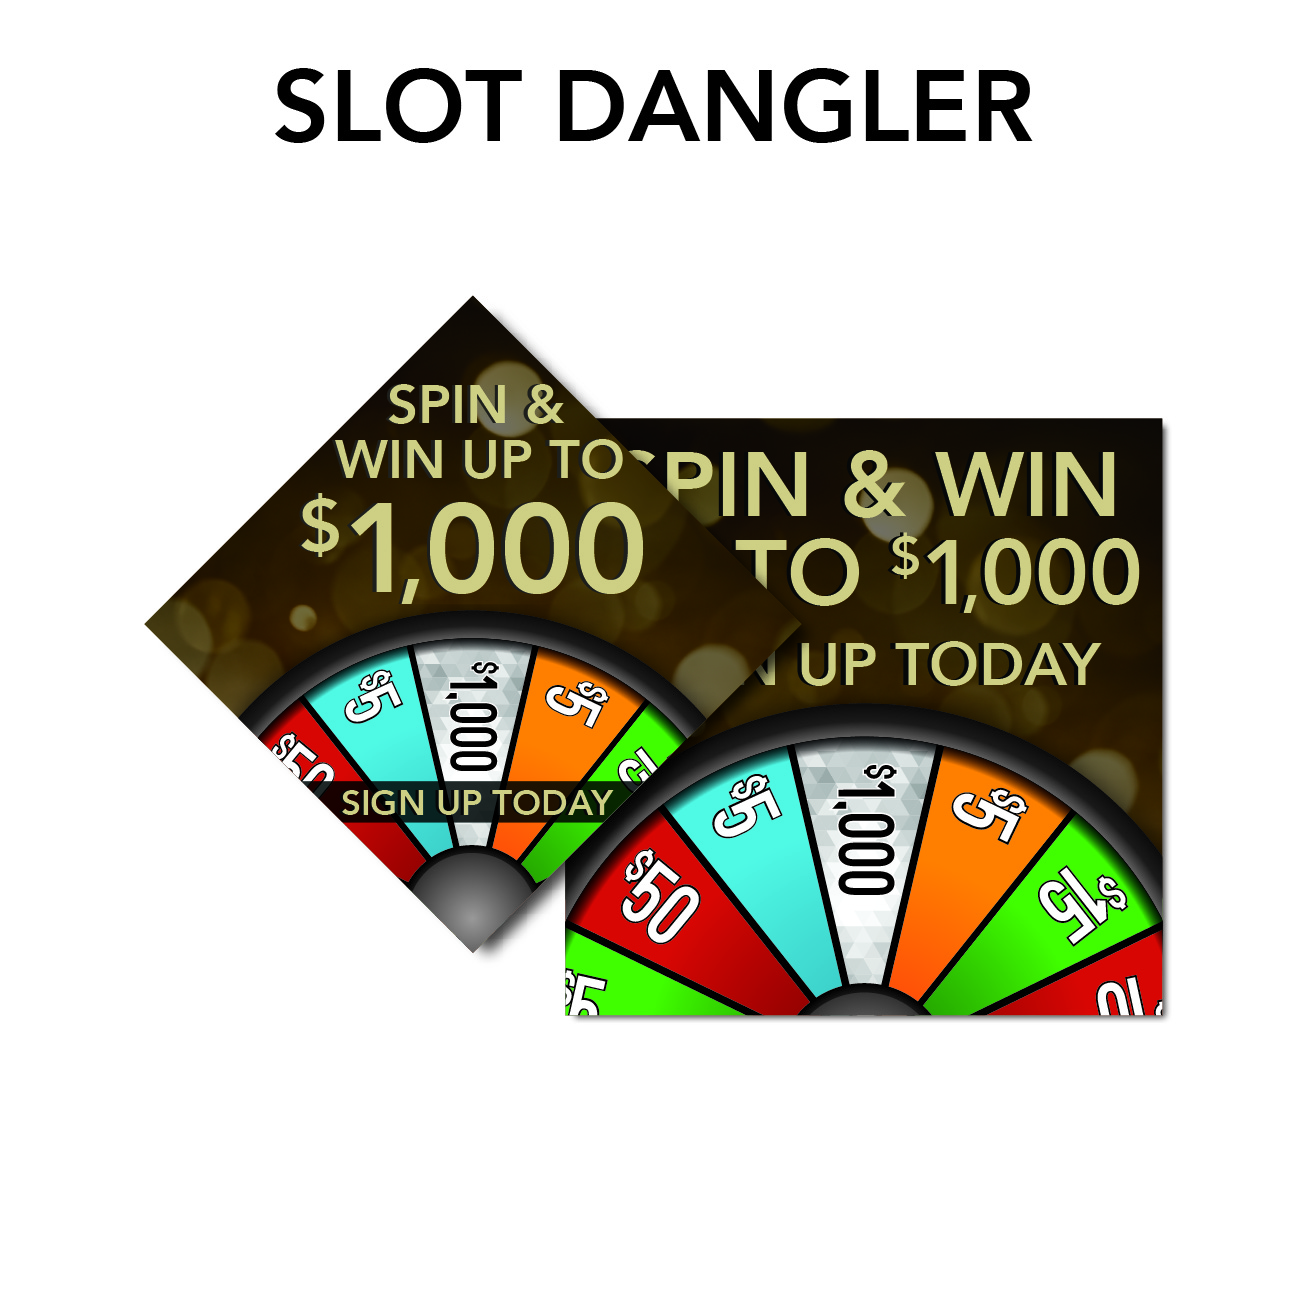 gro route rewards marketing needs slot dangler